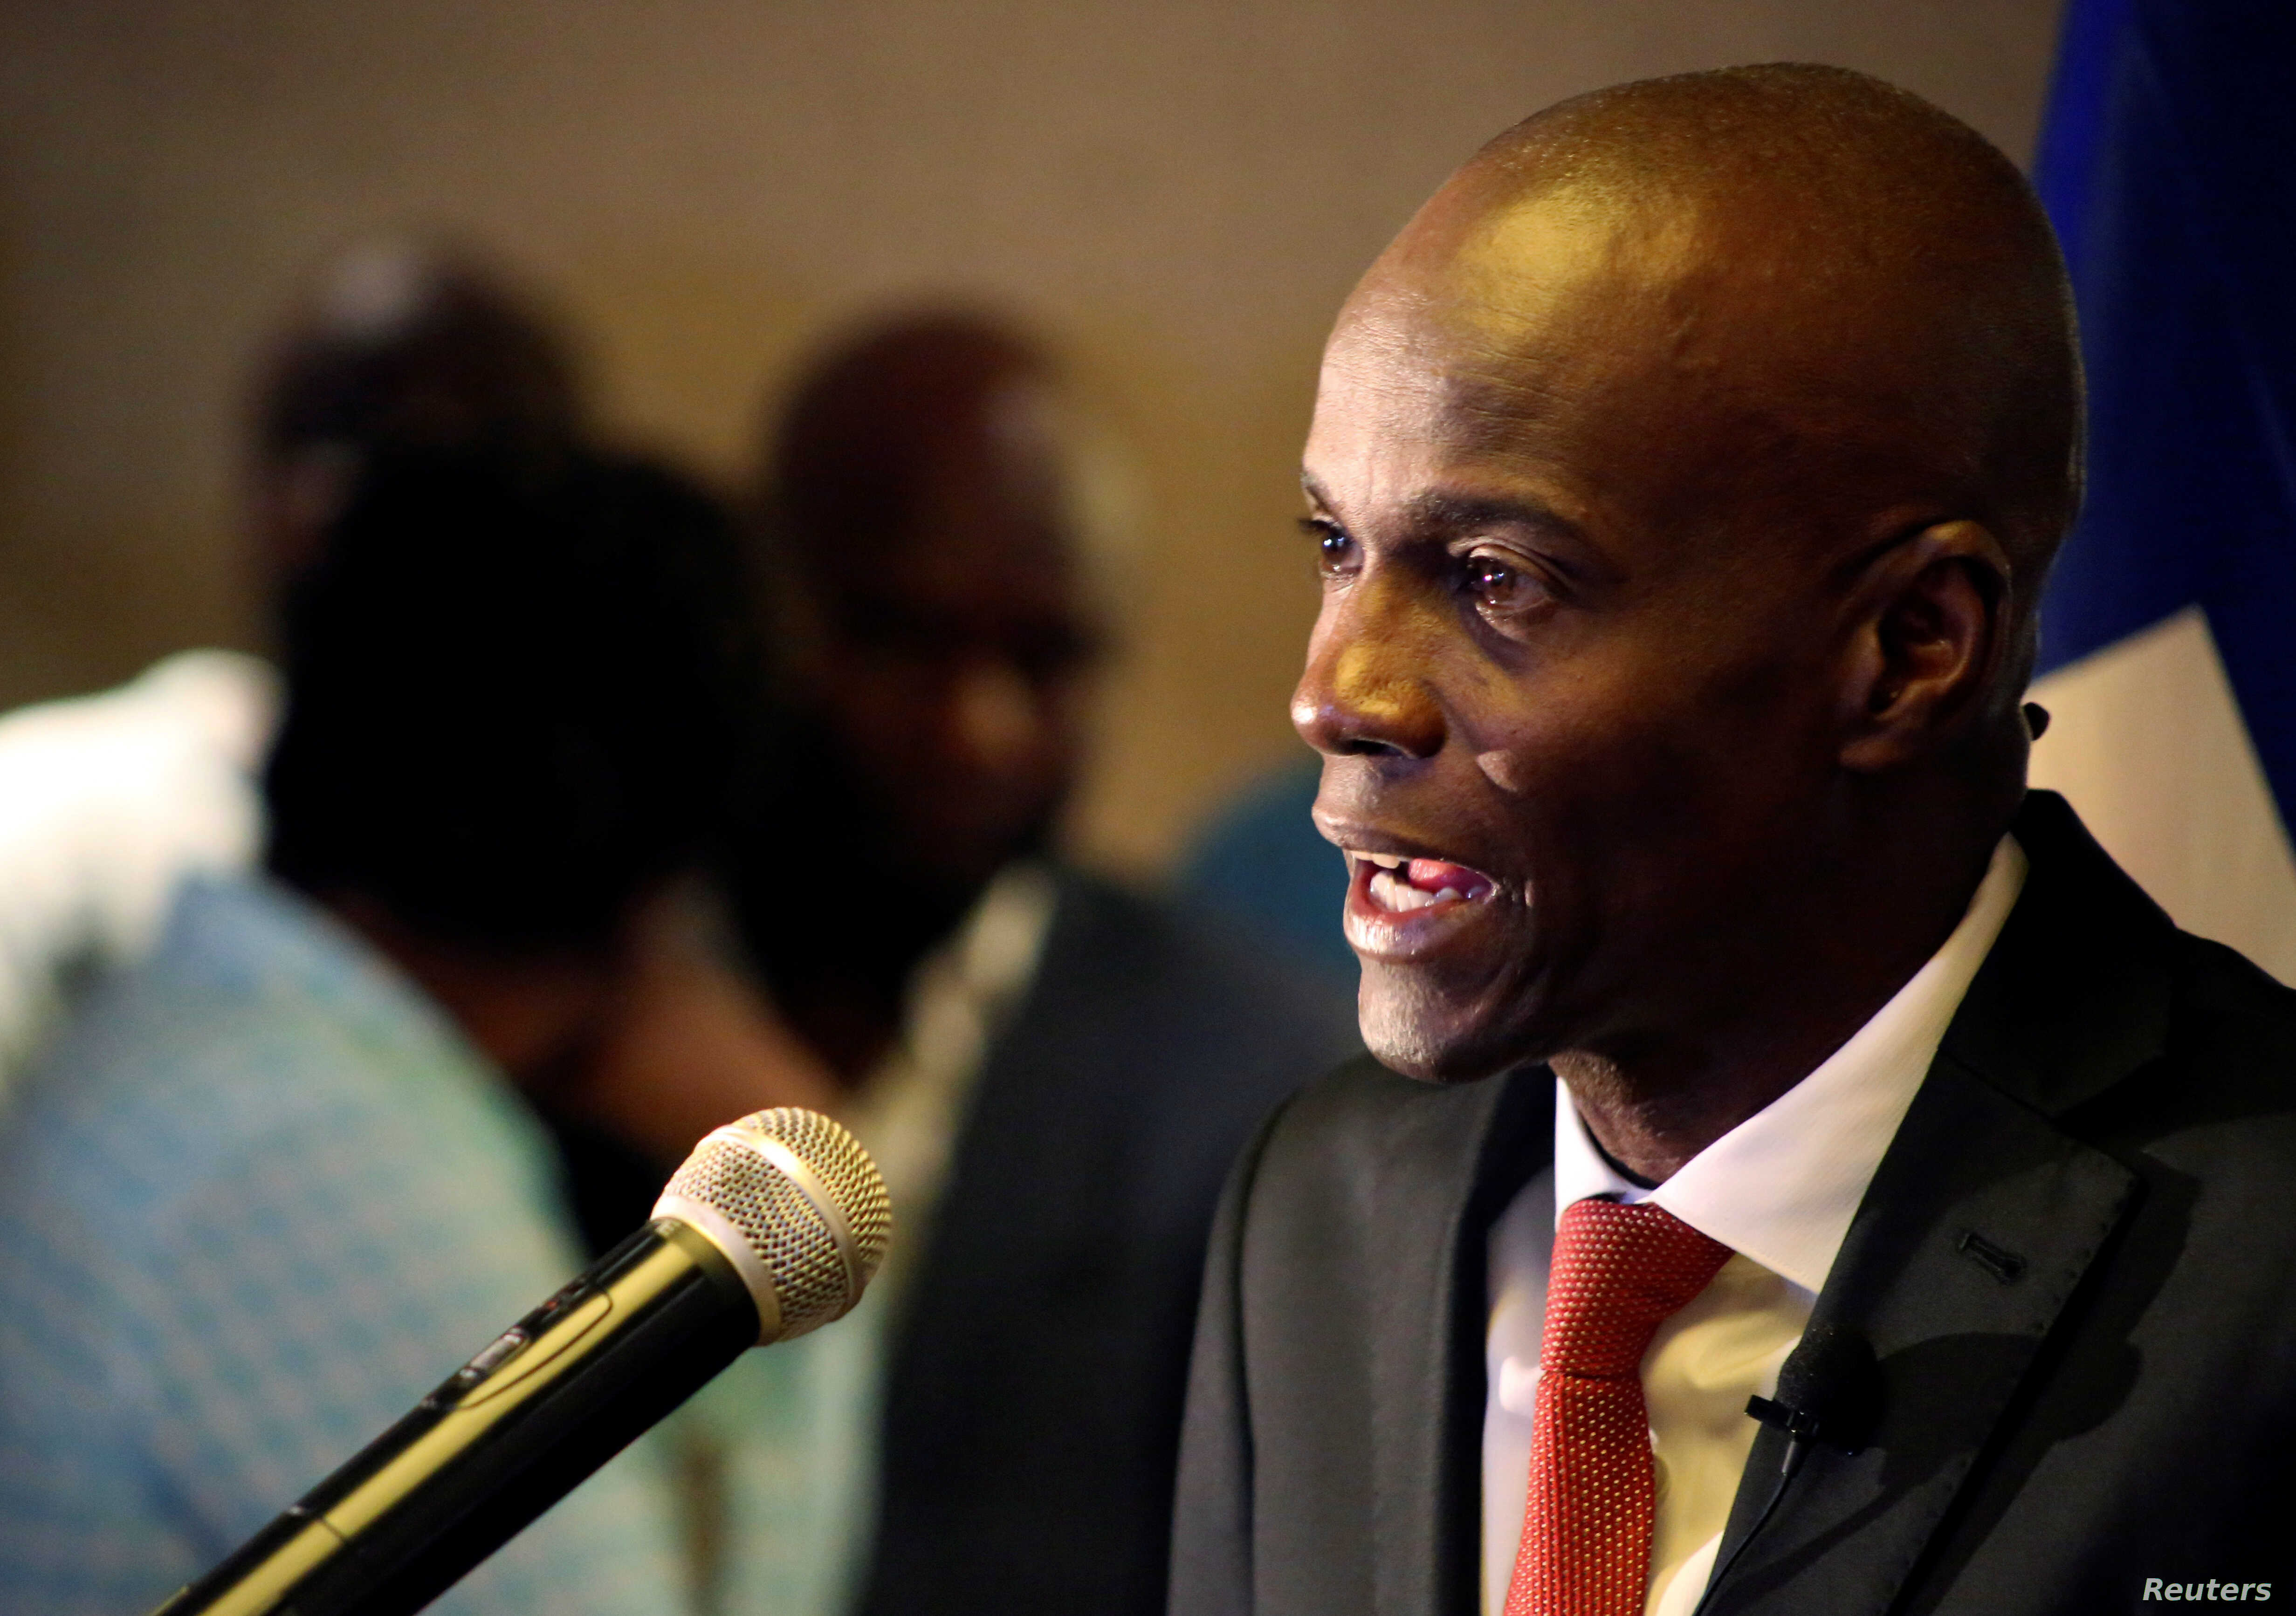 Jovenal Moise addresses the media after winning 55.67 percent of the vote in the November 20 presidential election, according to the electoral council, in Port-au-Prince, Haiti, Nov. 28, 2016.